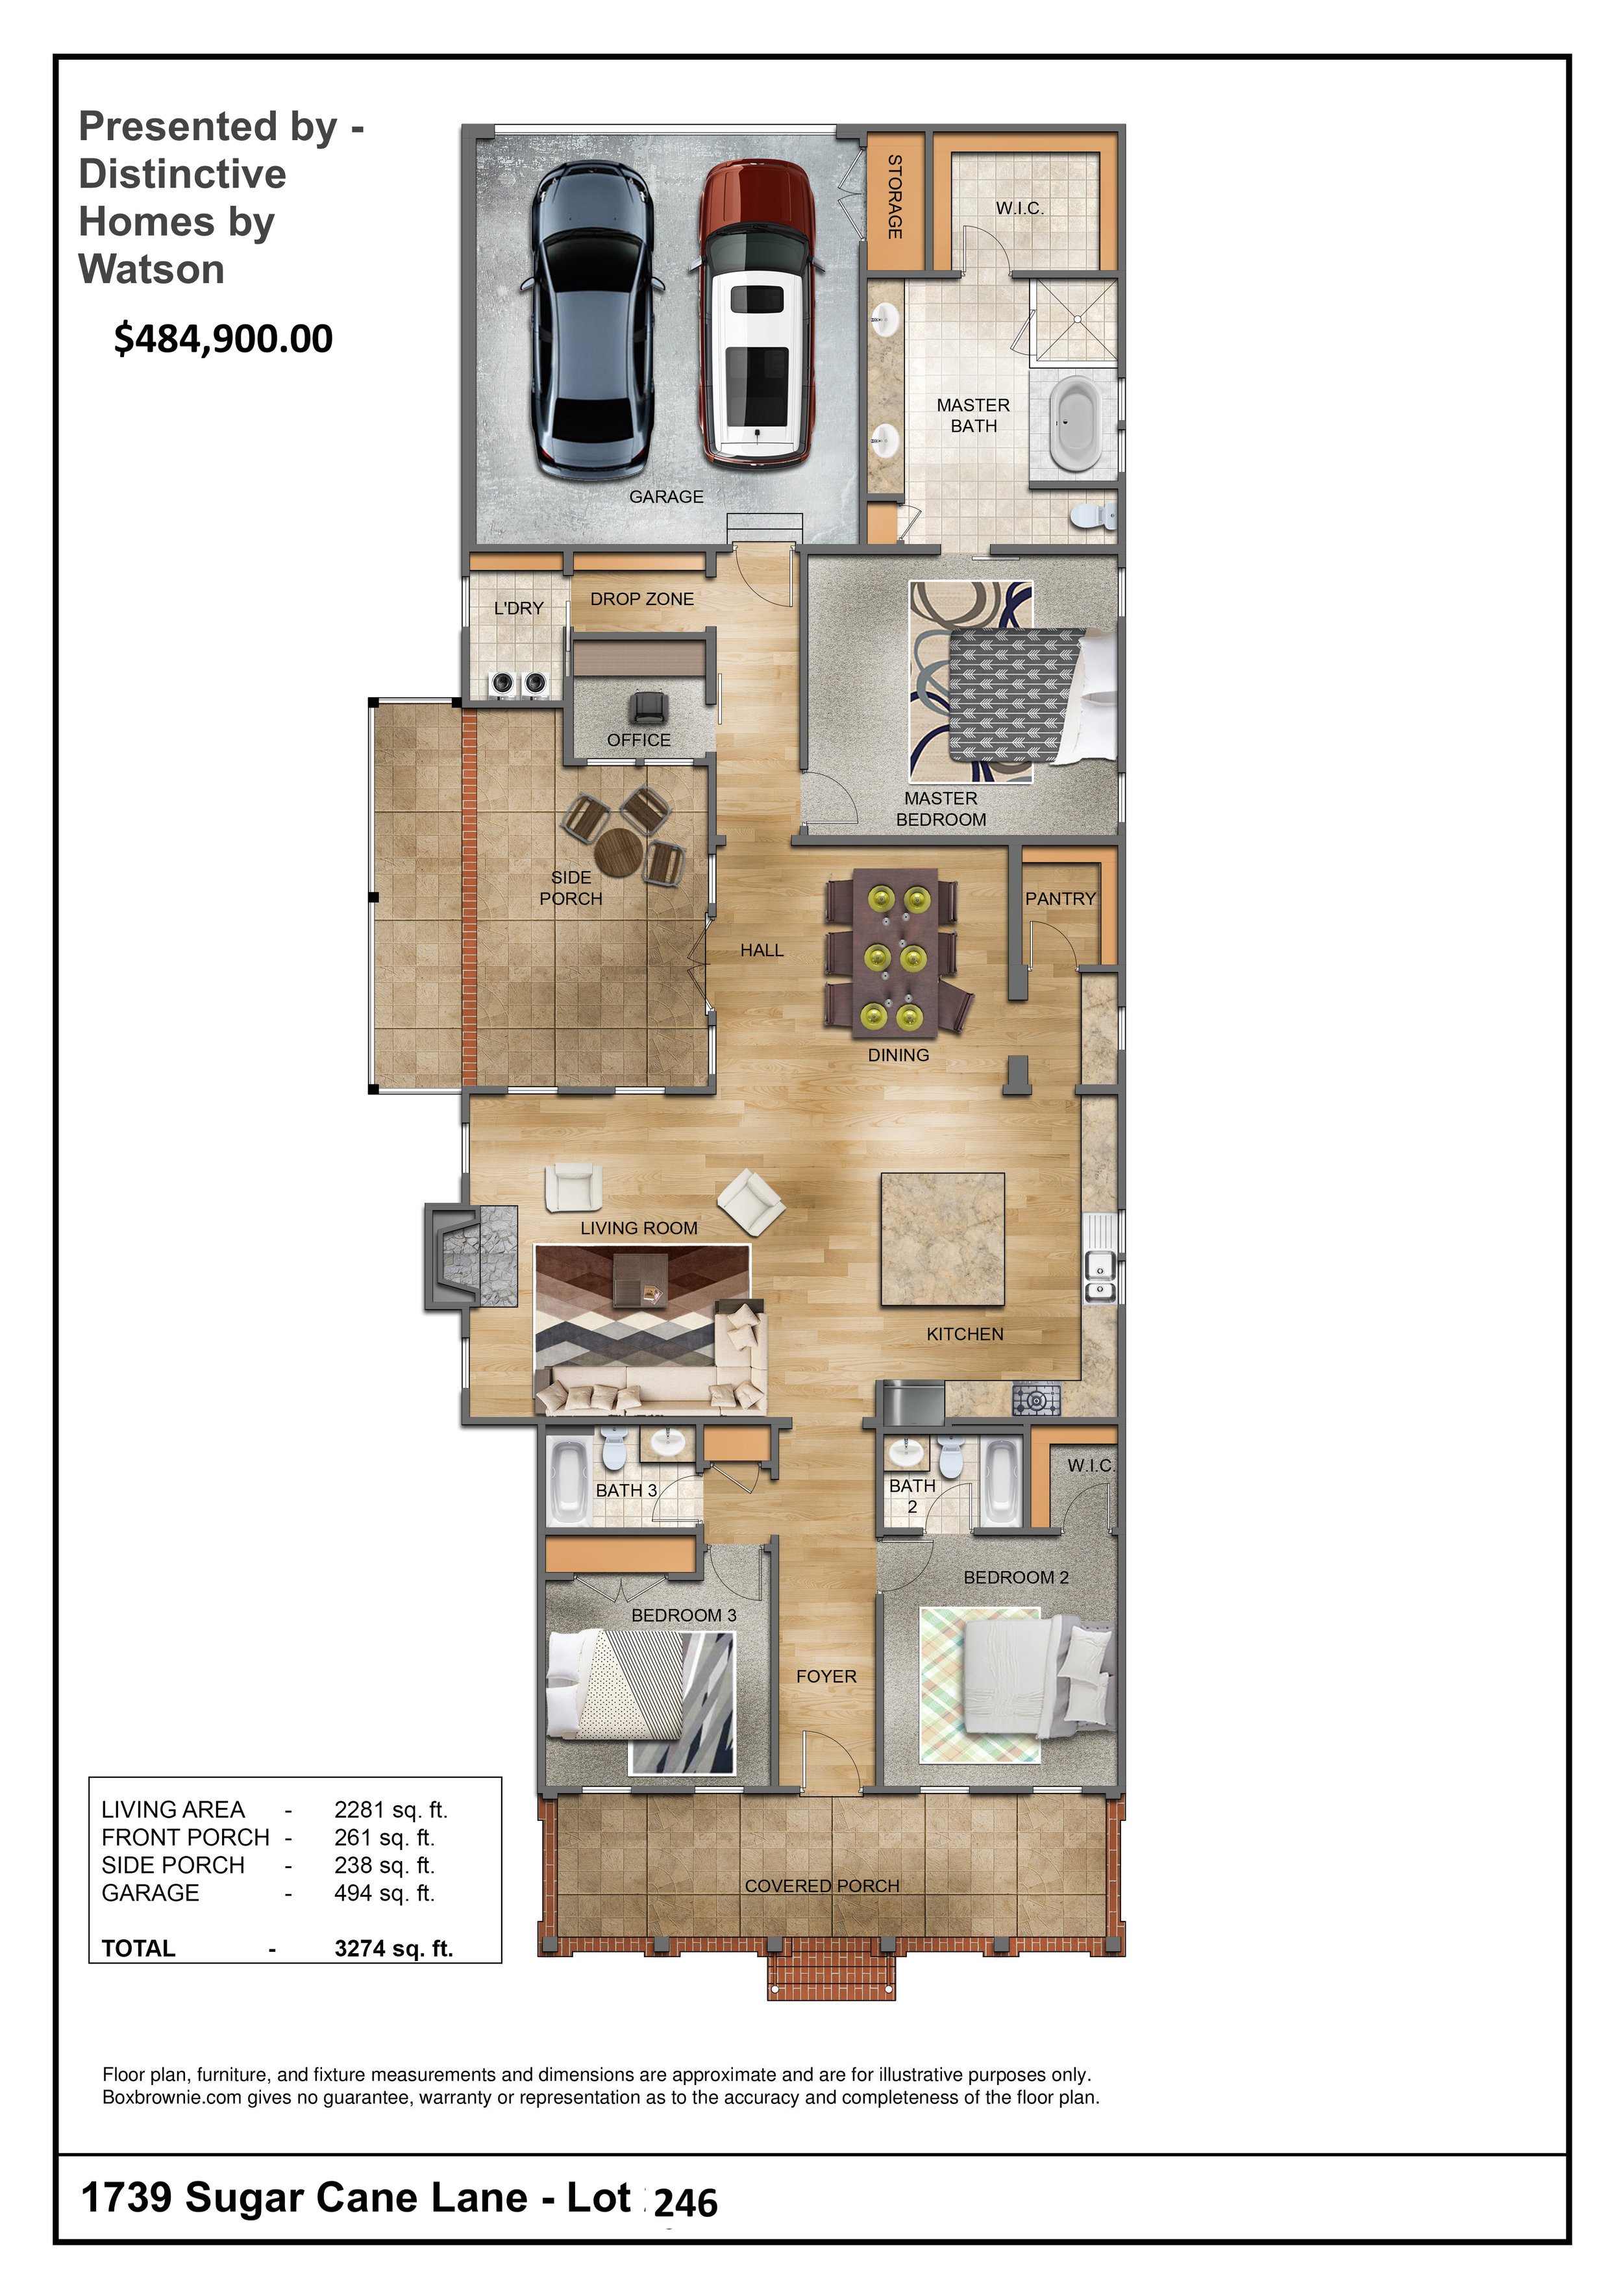 2D floor plan copy.jpg